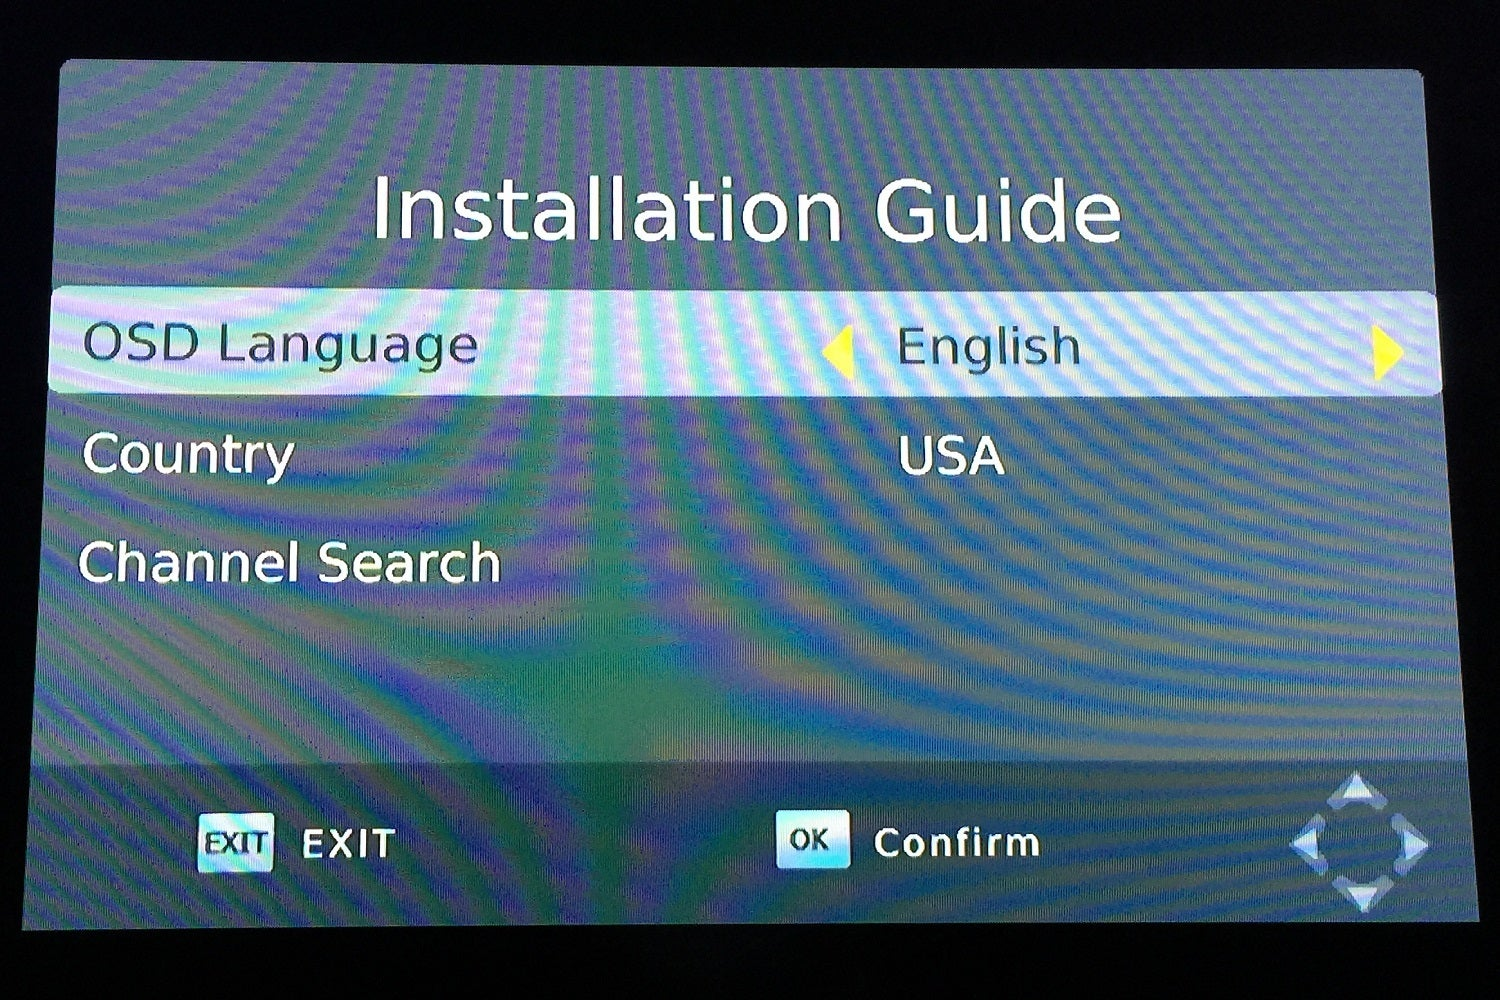 How to watch live TV on an Xbox One | TechHive